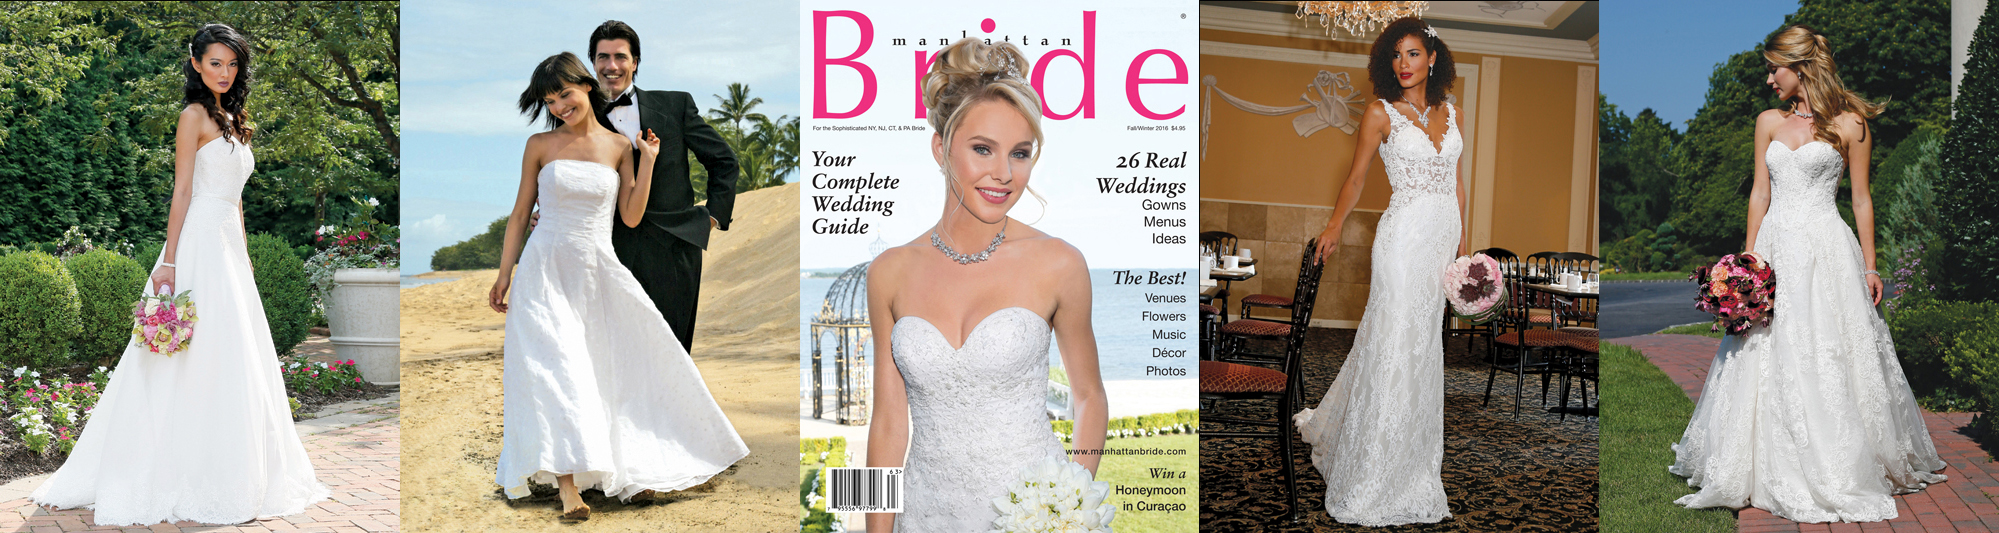 Manhattan Bride Covers & More F/W 16